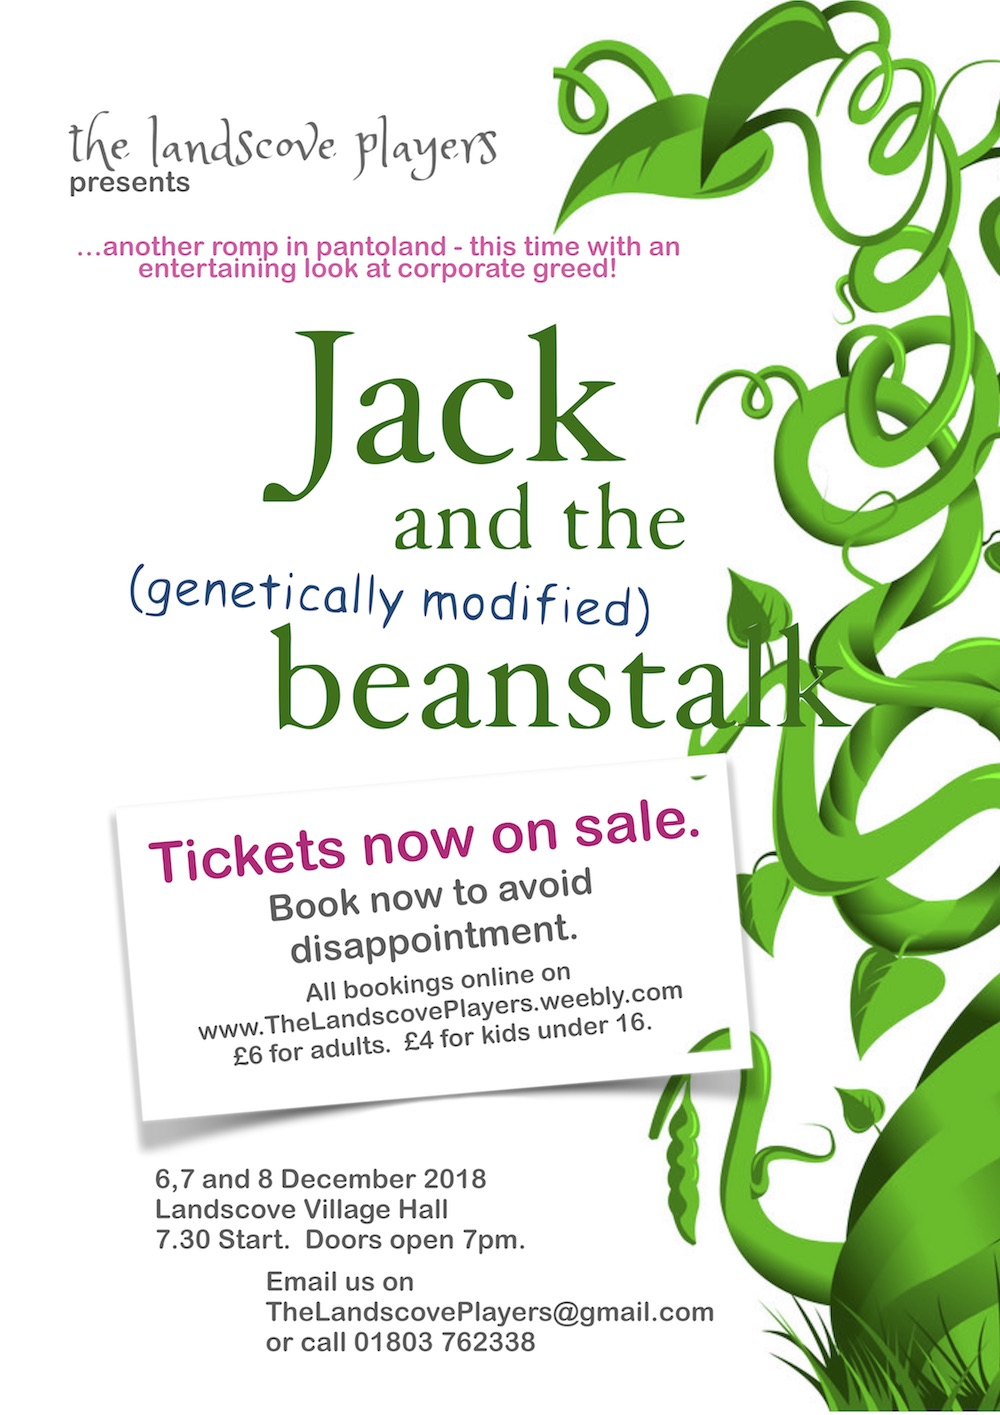 Jack & the Beanstalk Panto – 6,7, 8 Dec – Landscove Village Hall